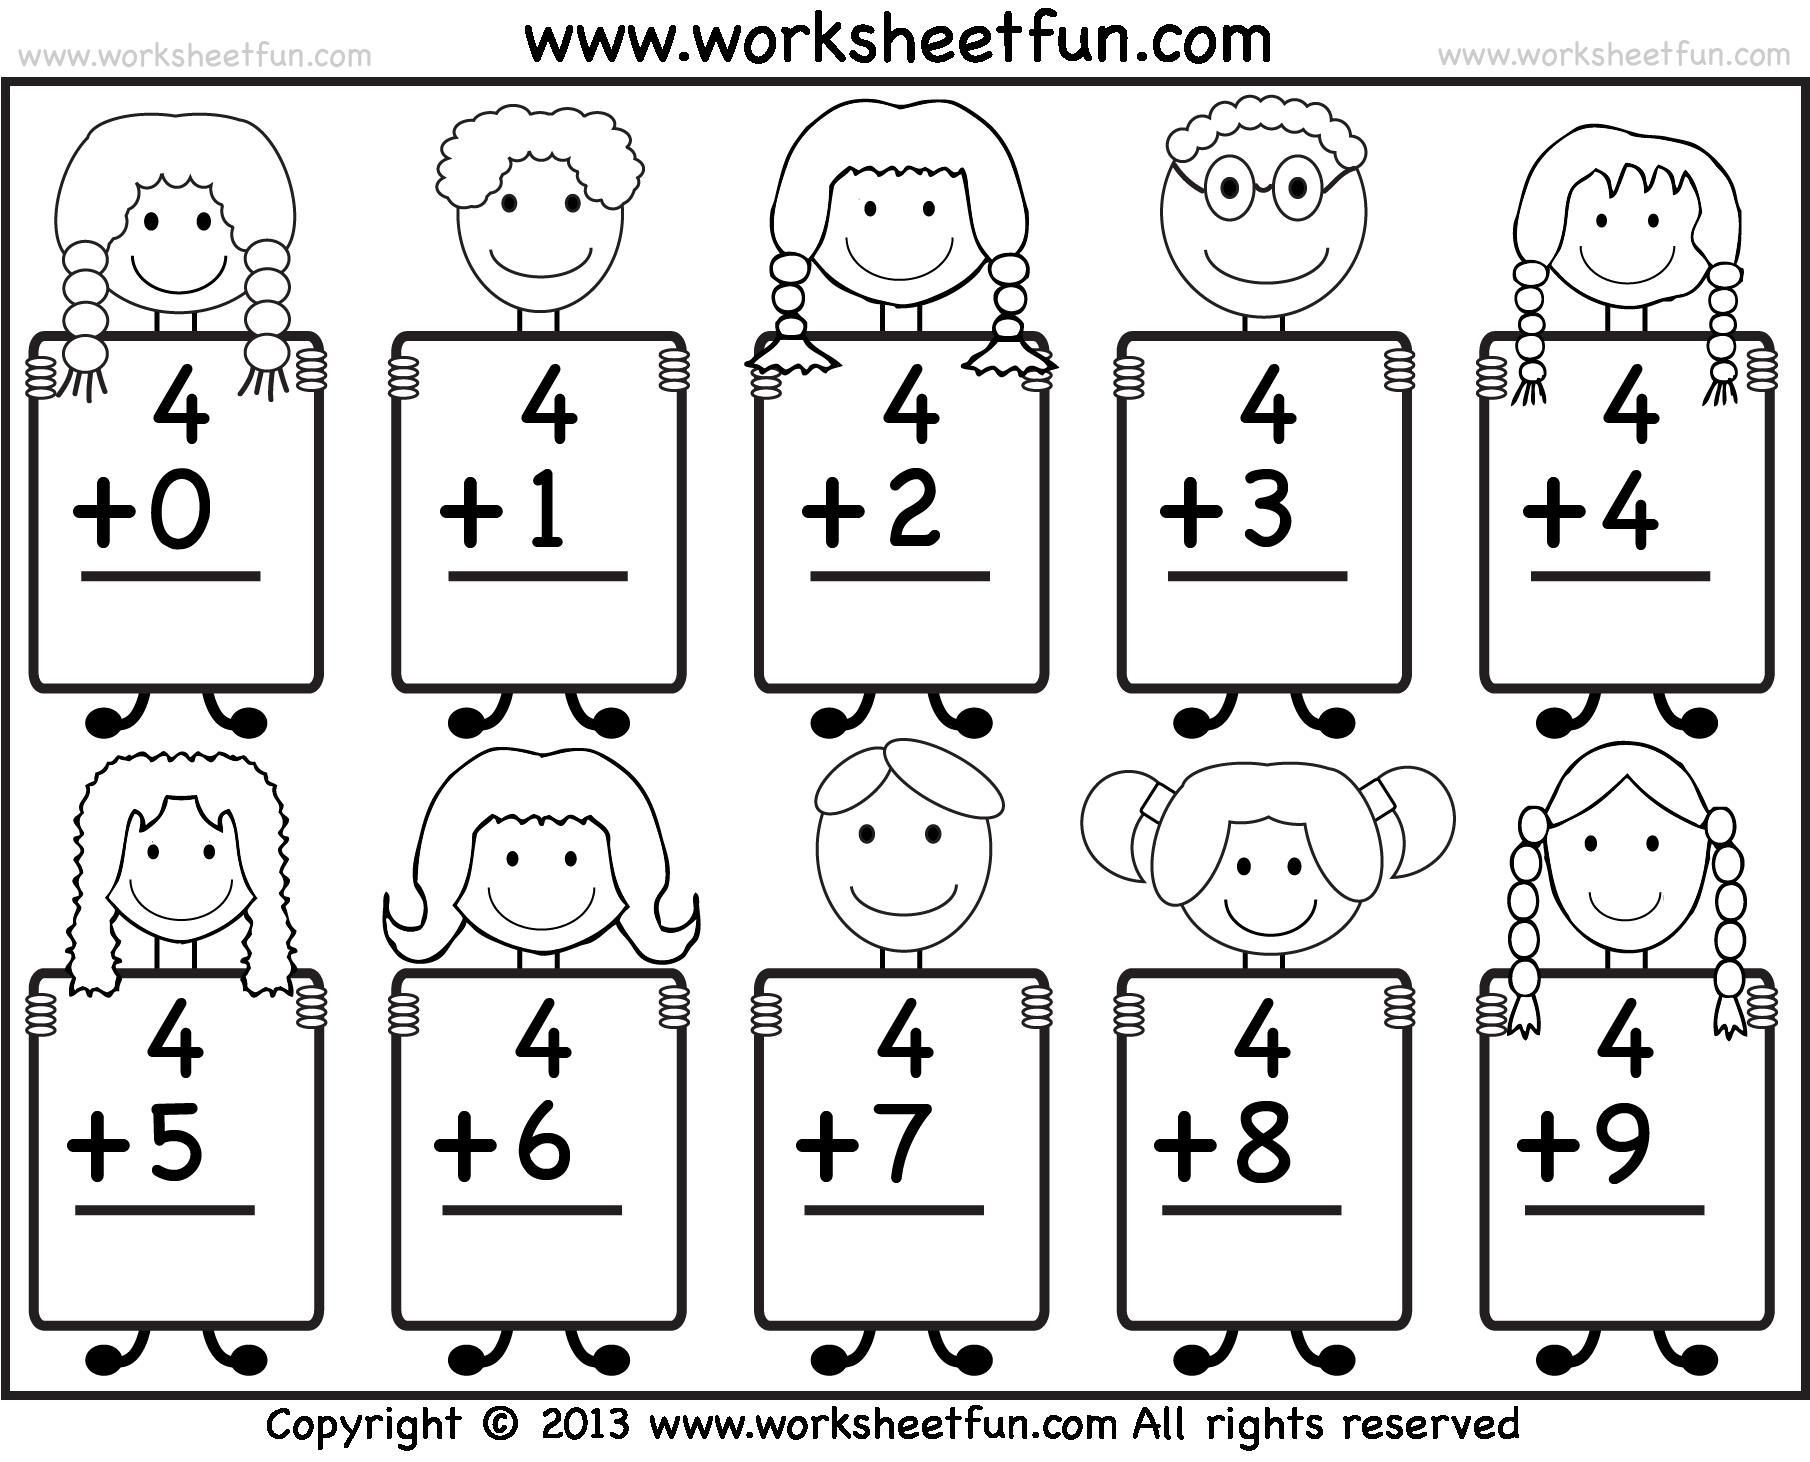 Free Printable Math Worksheets For Kindergarten Addition 1